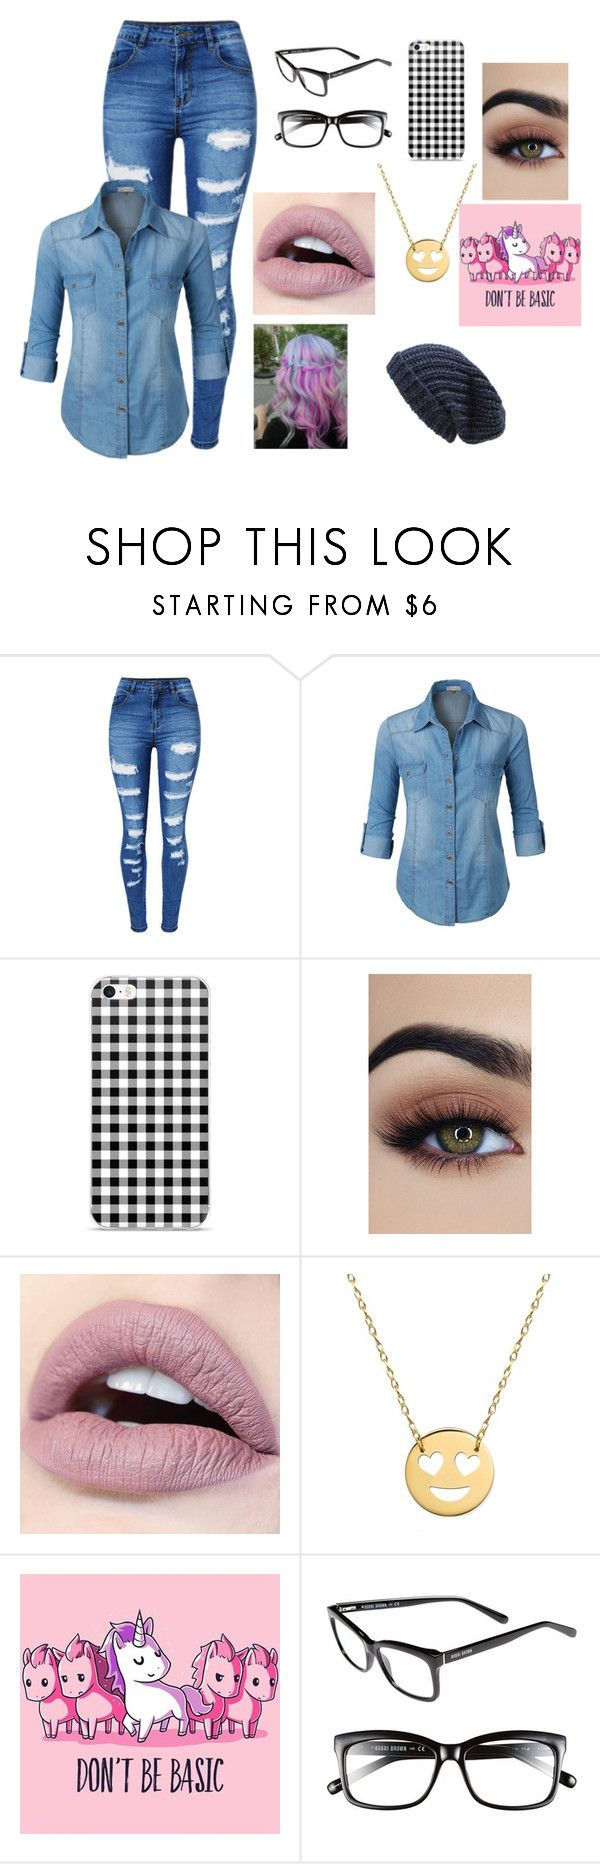 """Jaiden Smith #5"" by maya-fischbach on Polyvore featuring WithChic, LE3NO, Jane Basch, Bobbi Brown Cosmetics and Phase 3"